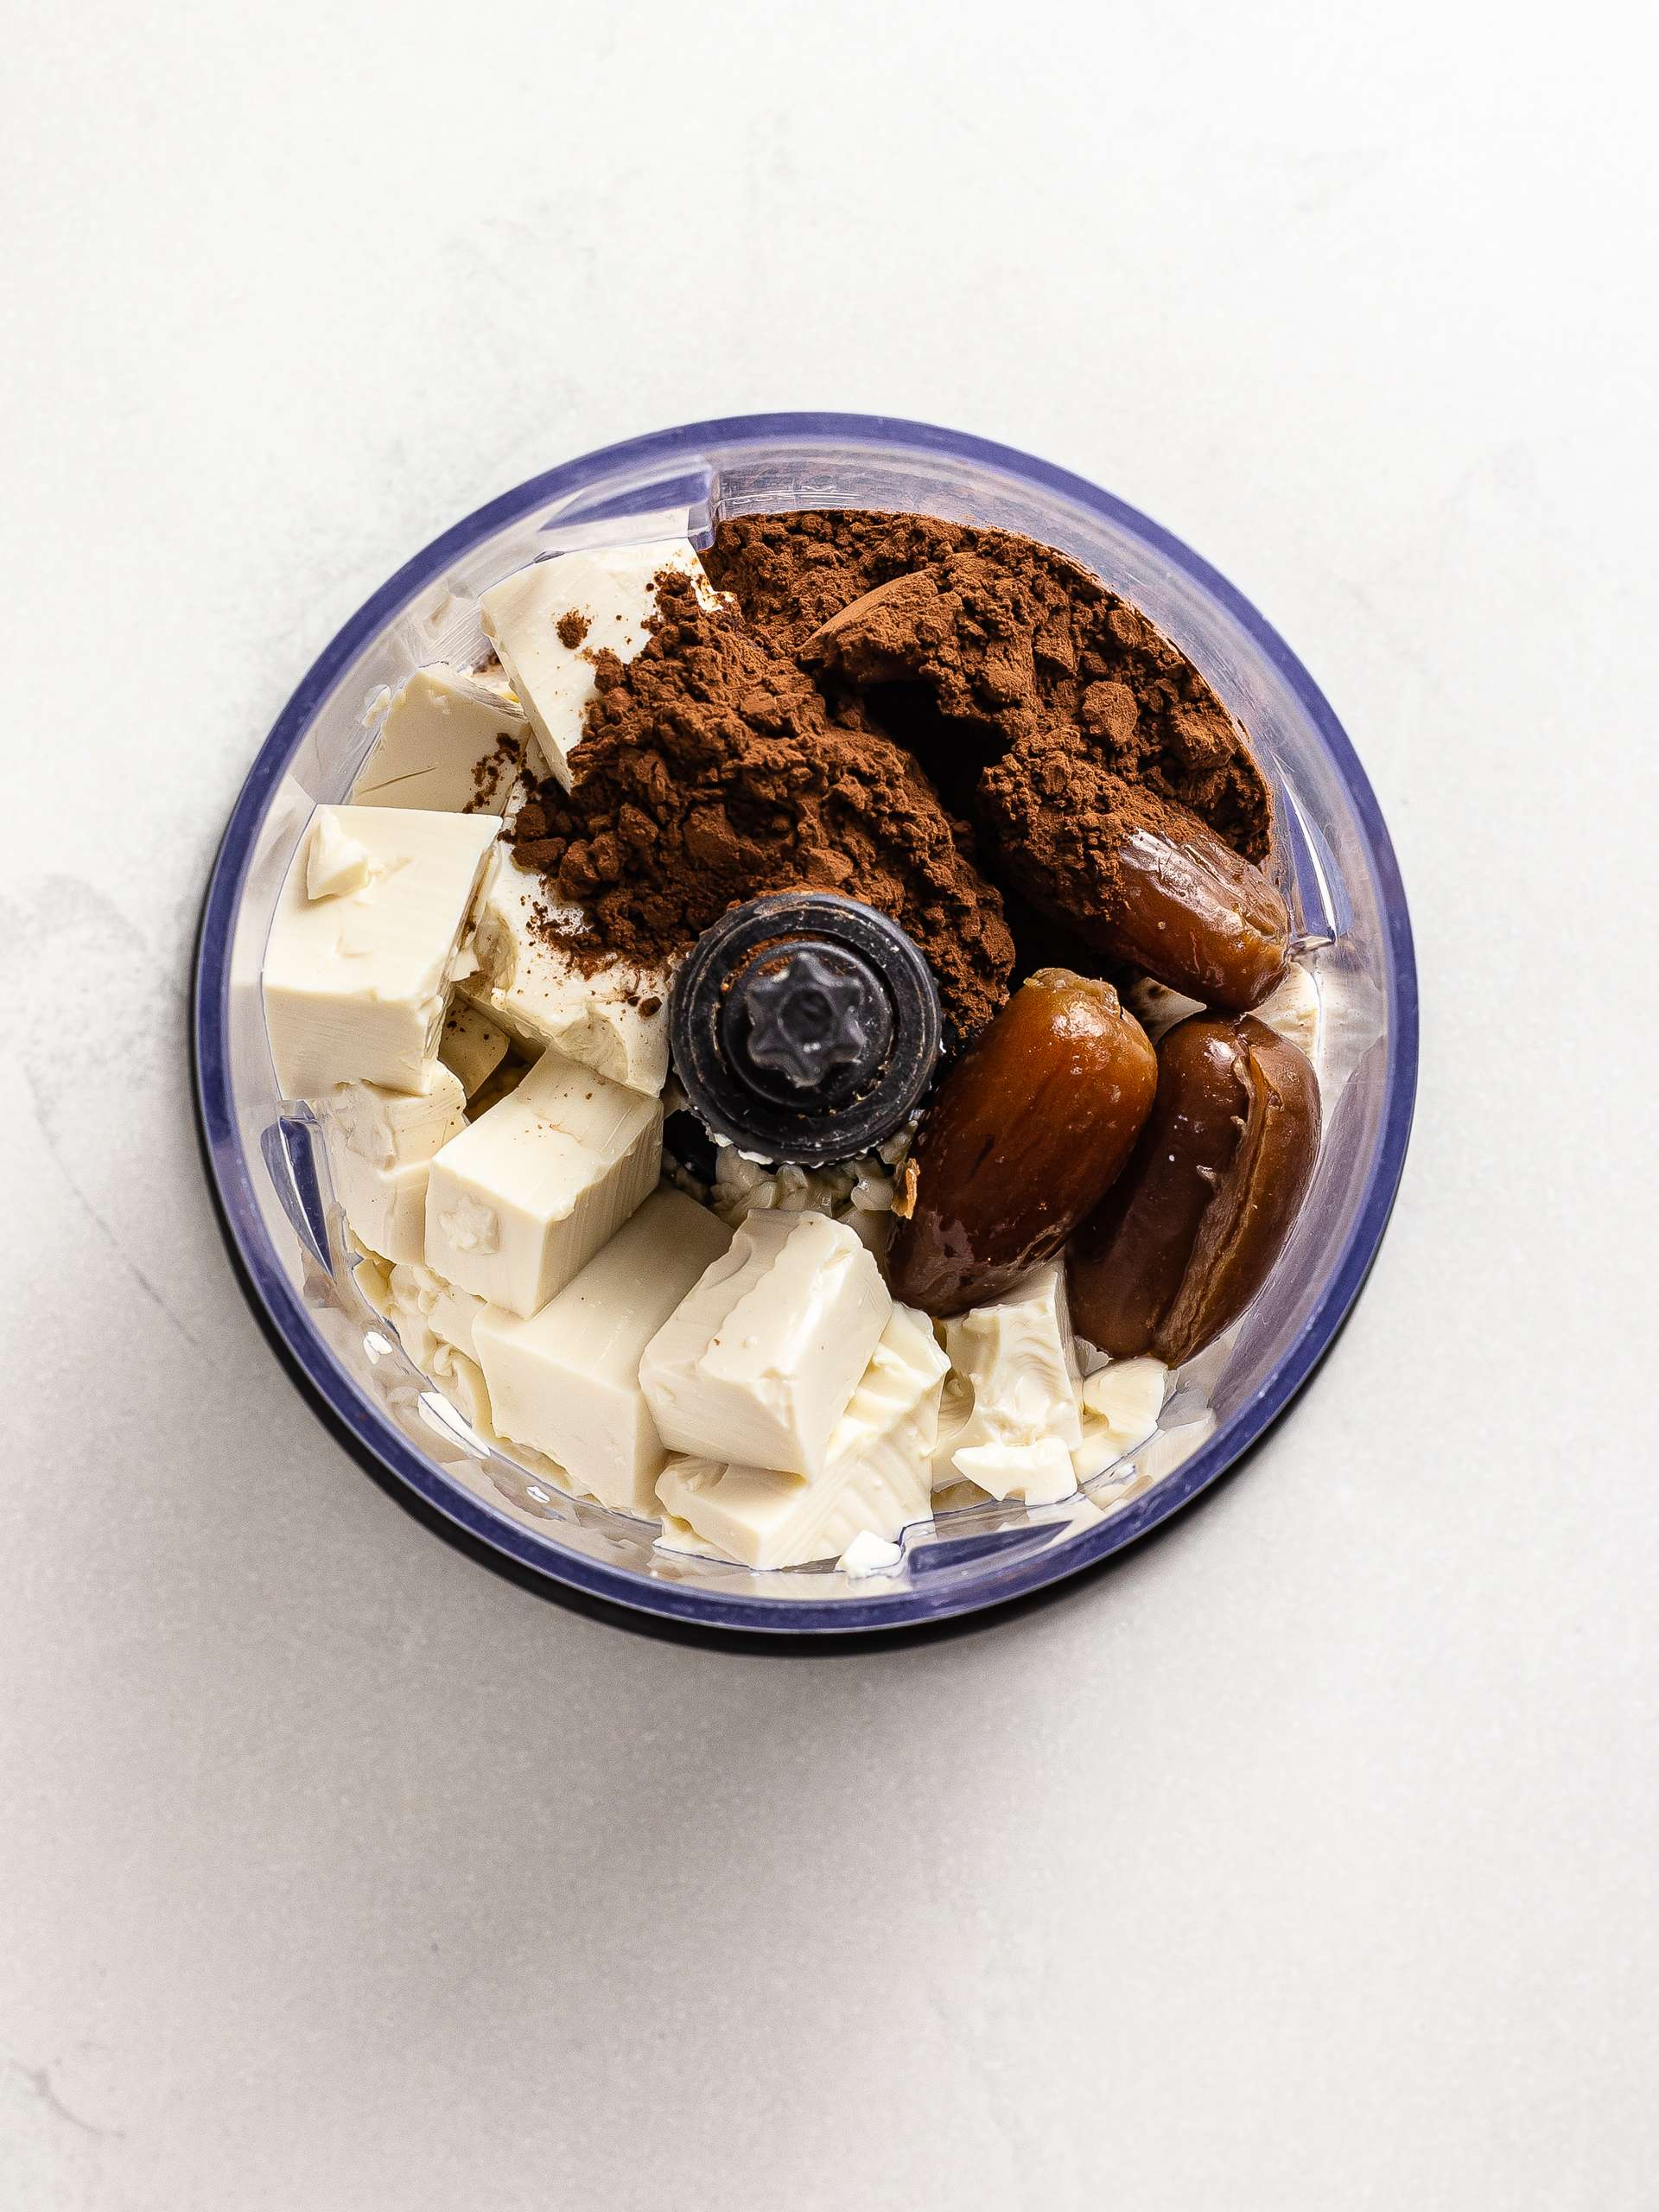 silken tofu and cocoa in a blender